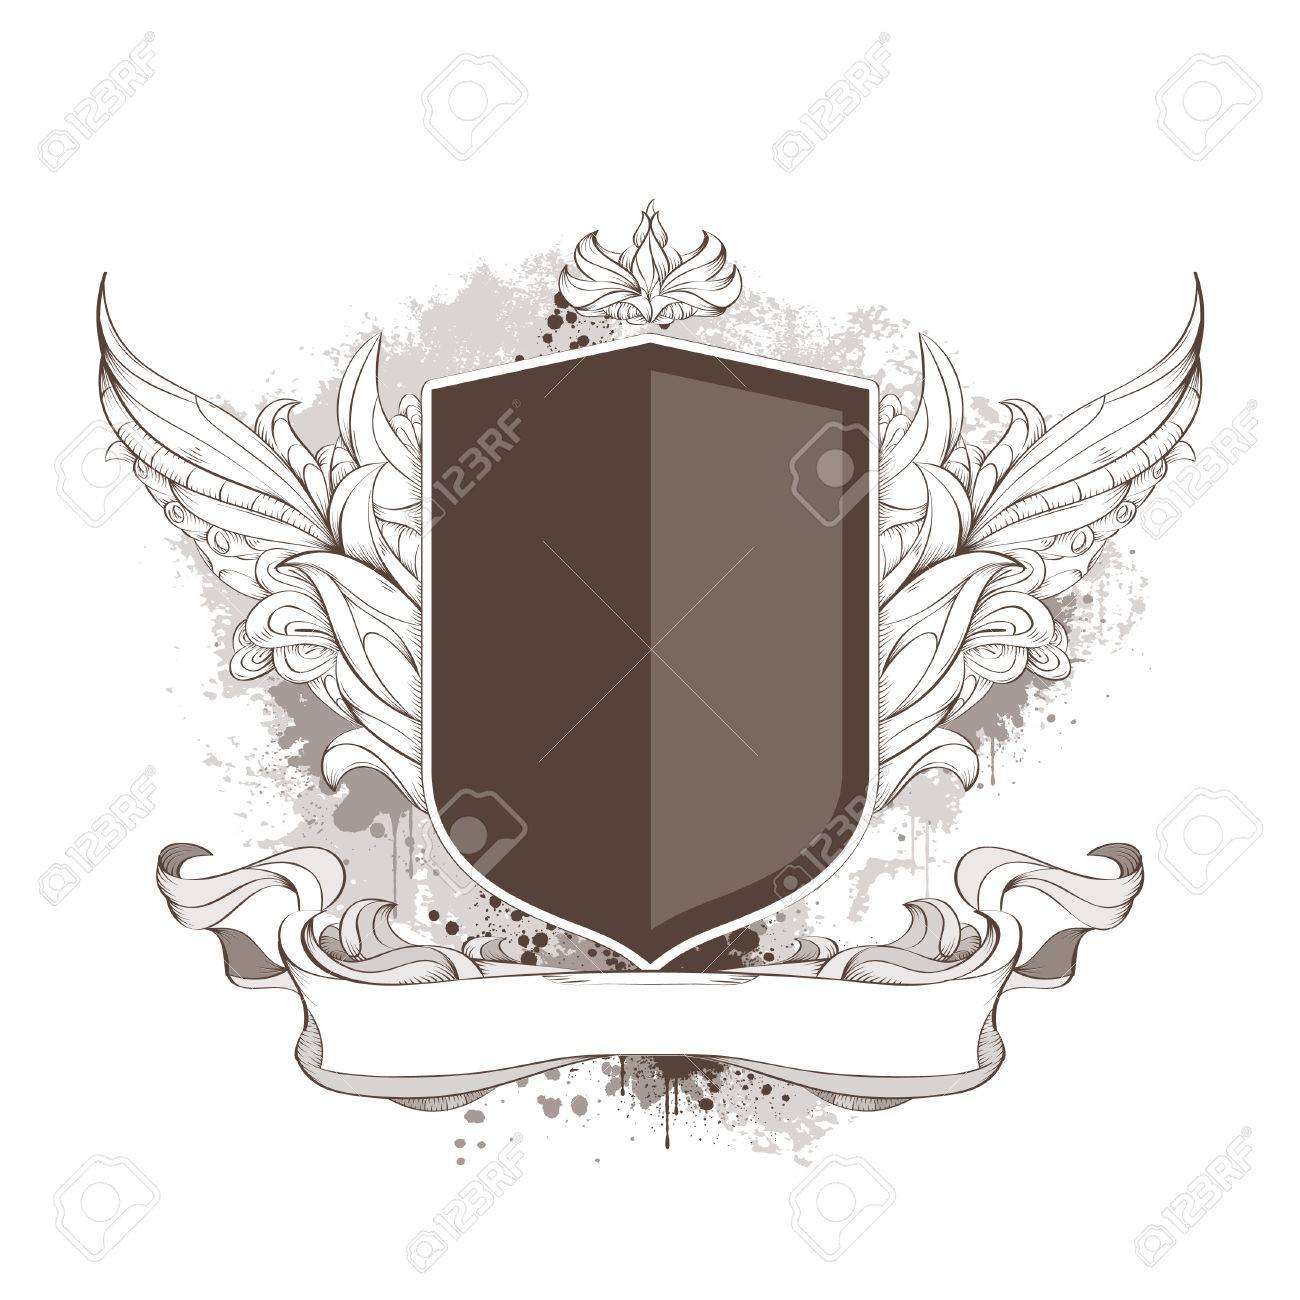 Badge and bizarre pattern on dirty background. Banner for your text. Stock Vector - 6907014